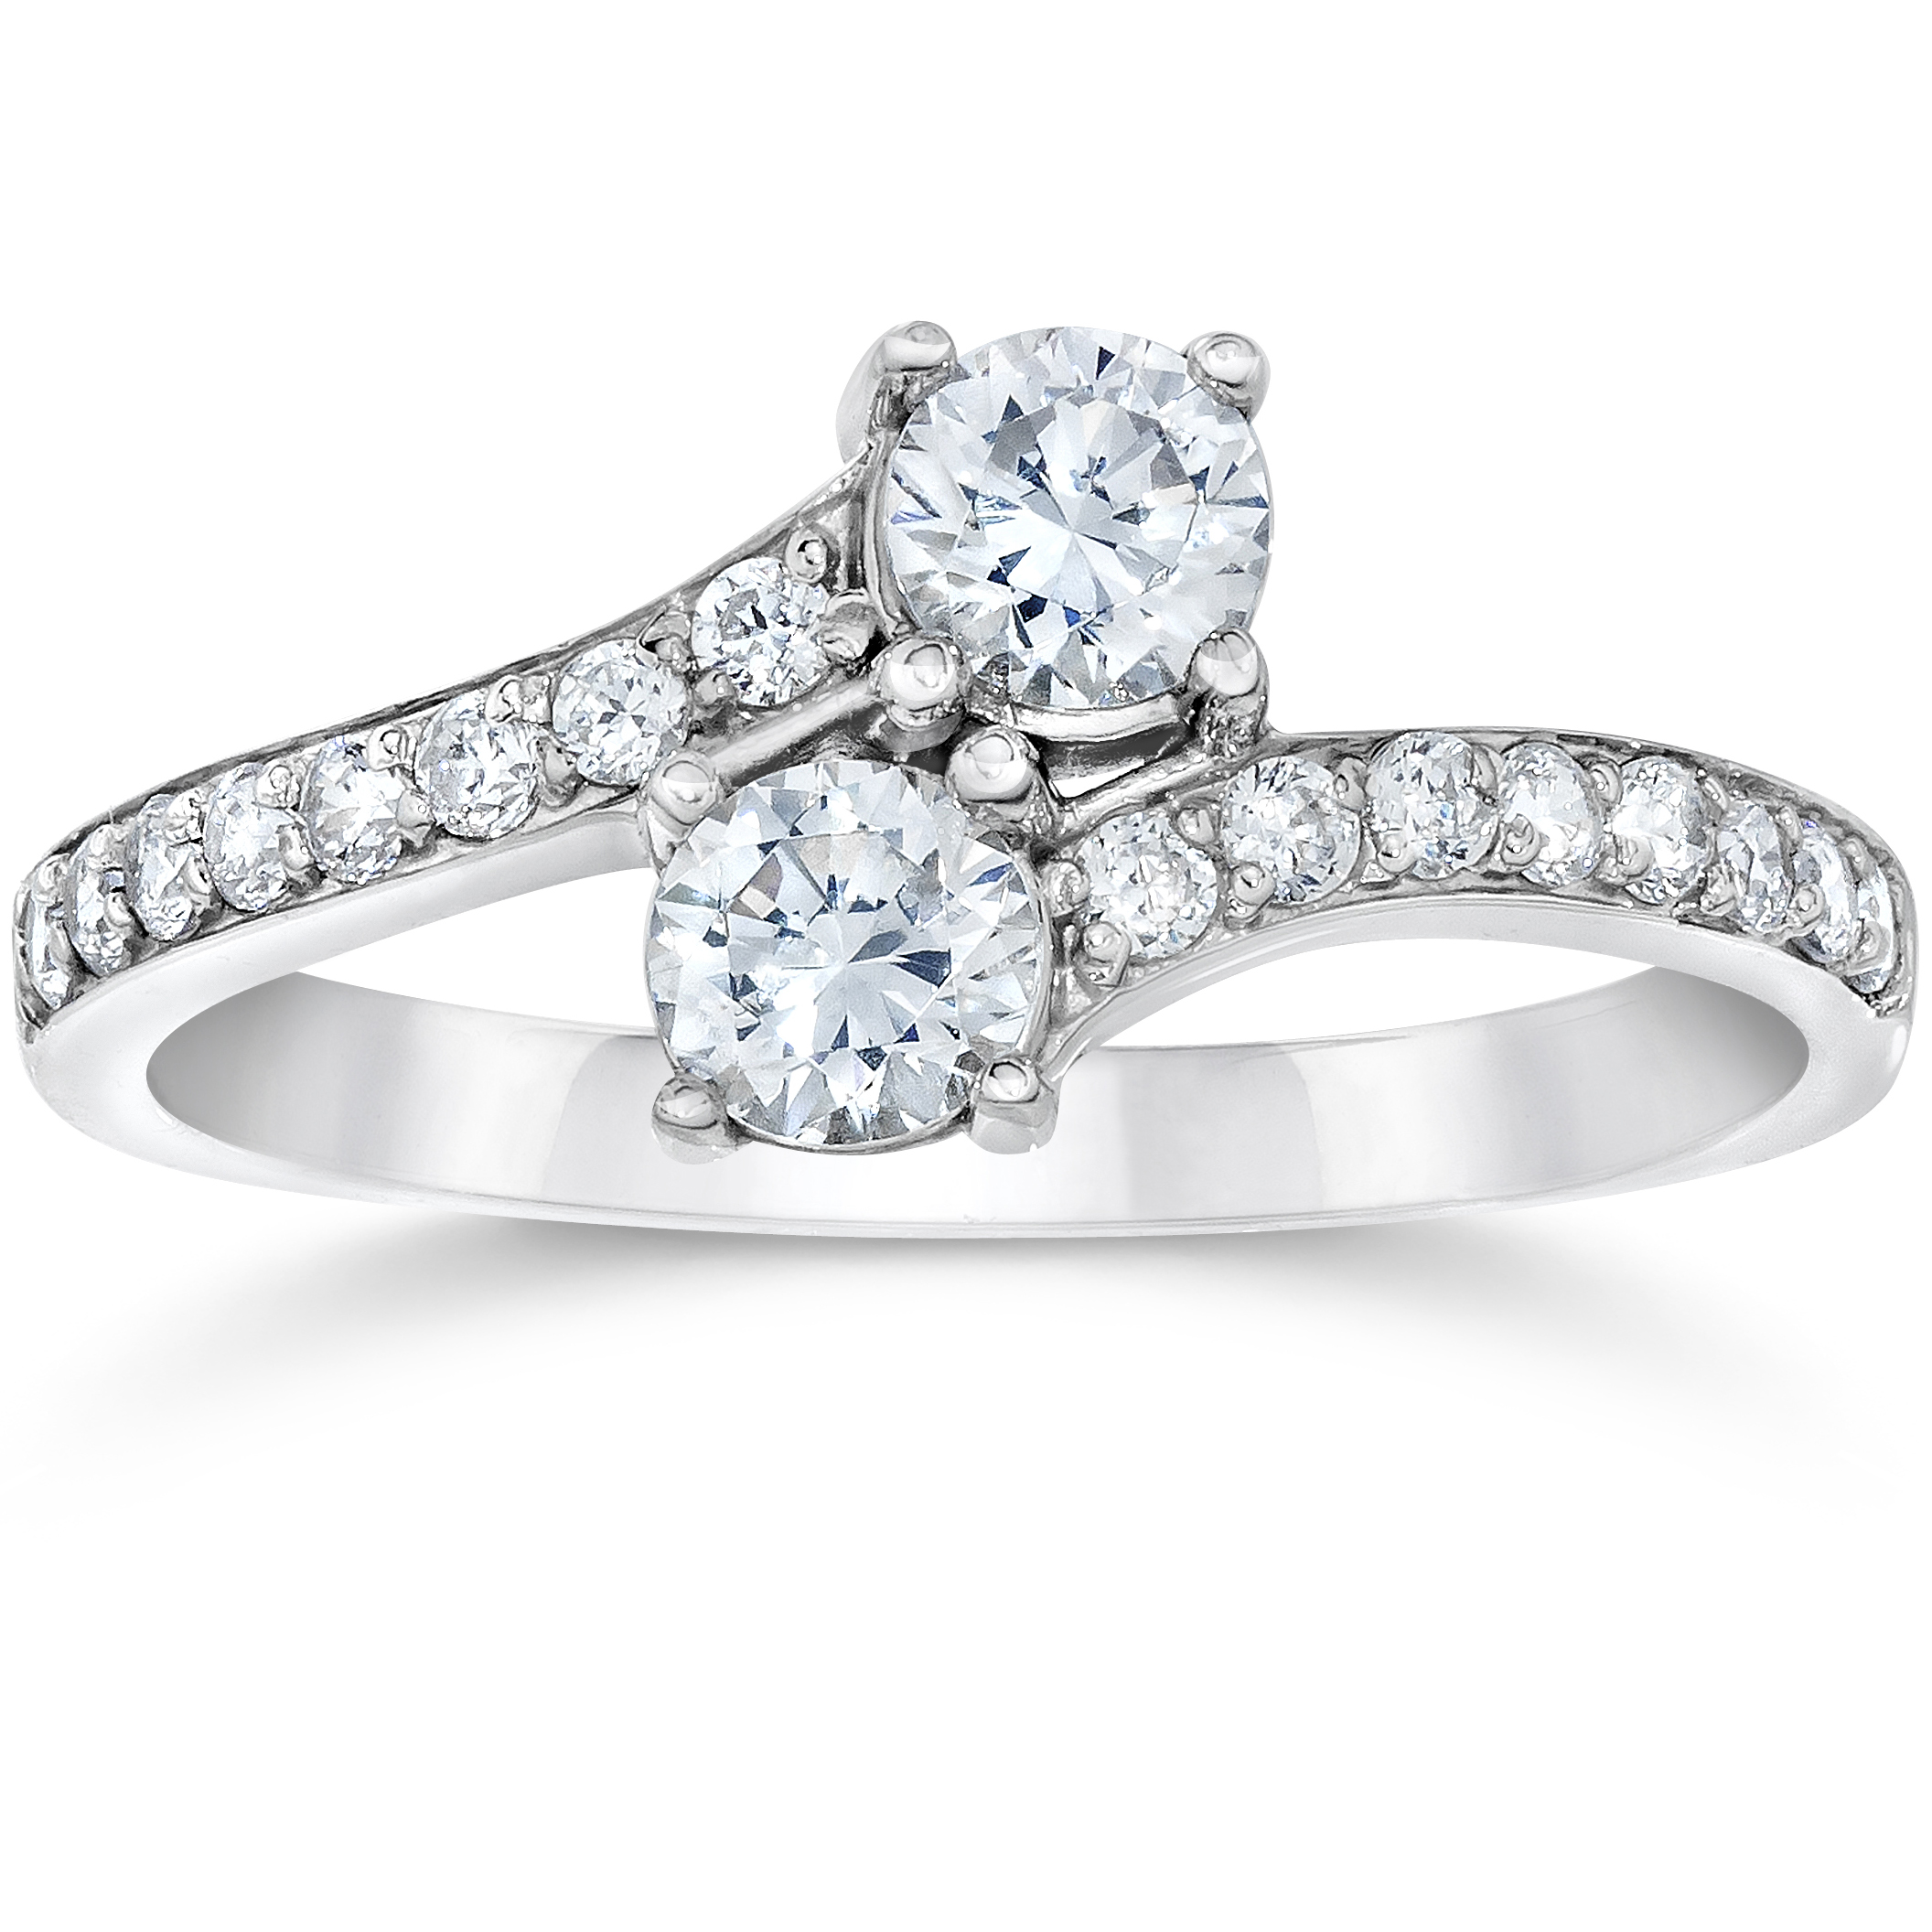 1.50Ct Forever Us Two Stone Two Diamond Engagement Solitaire Ring 14K White Gold by Pompeii3